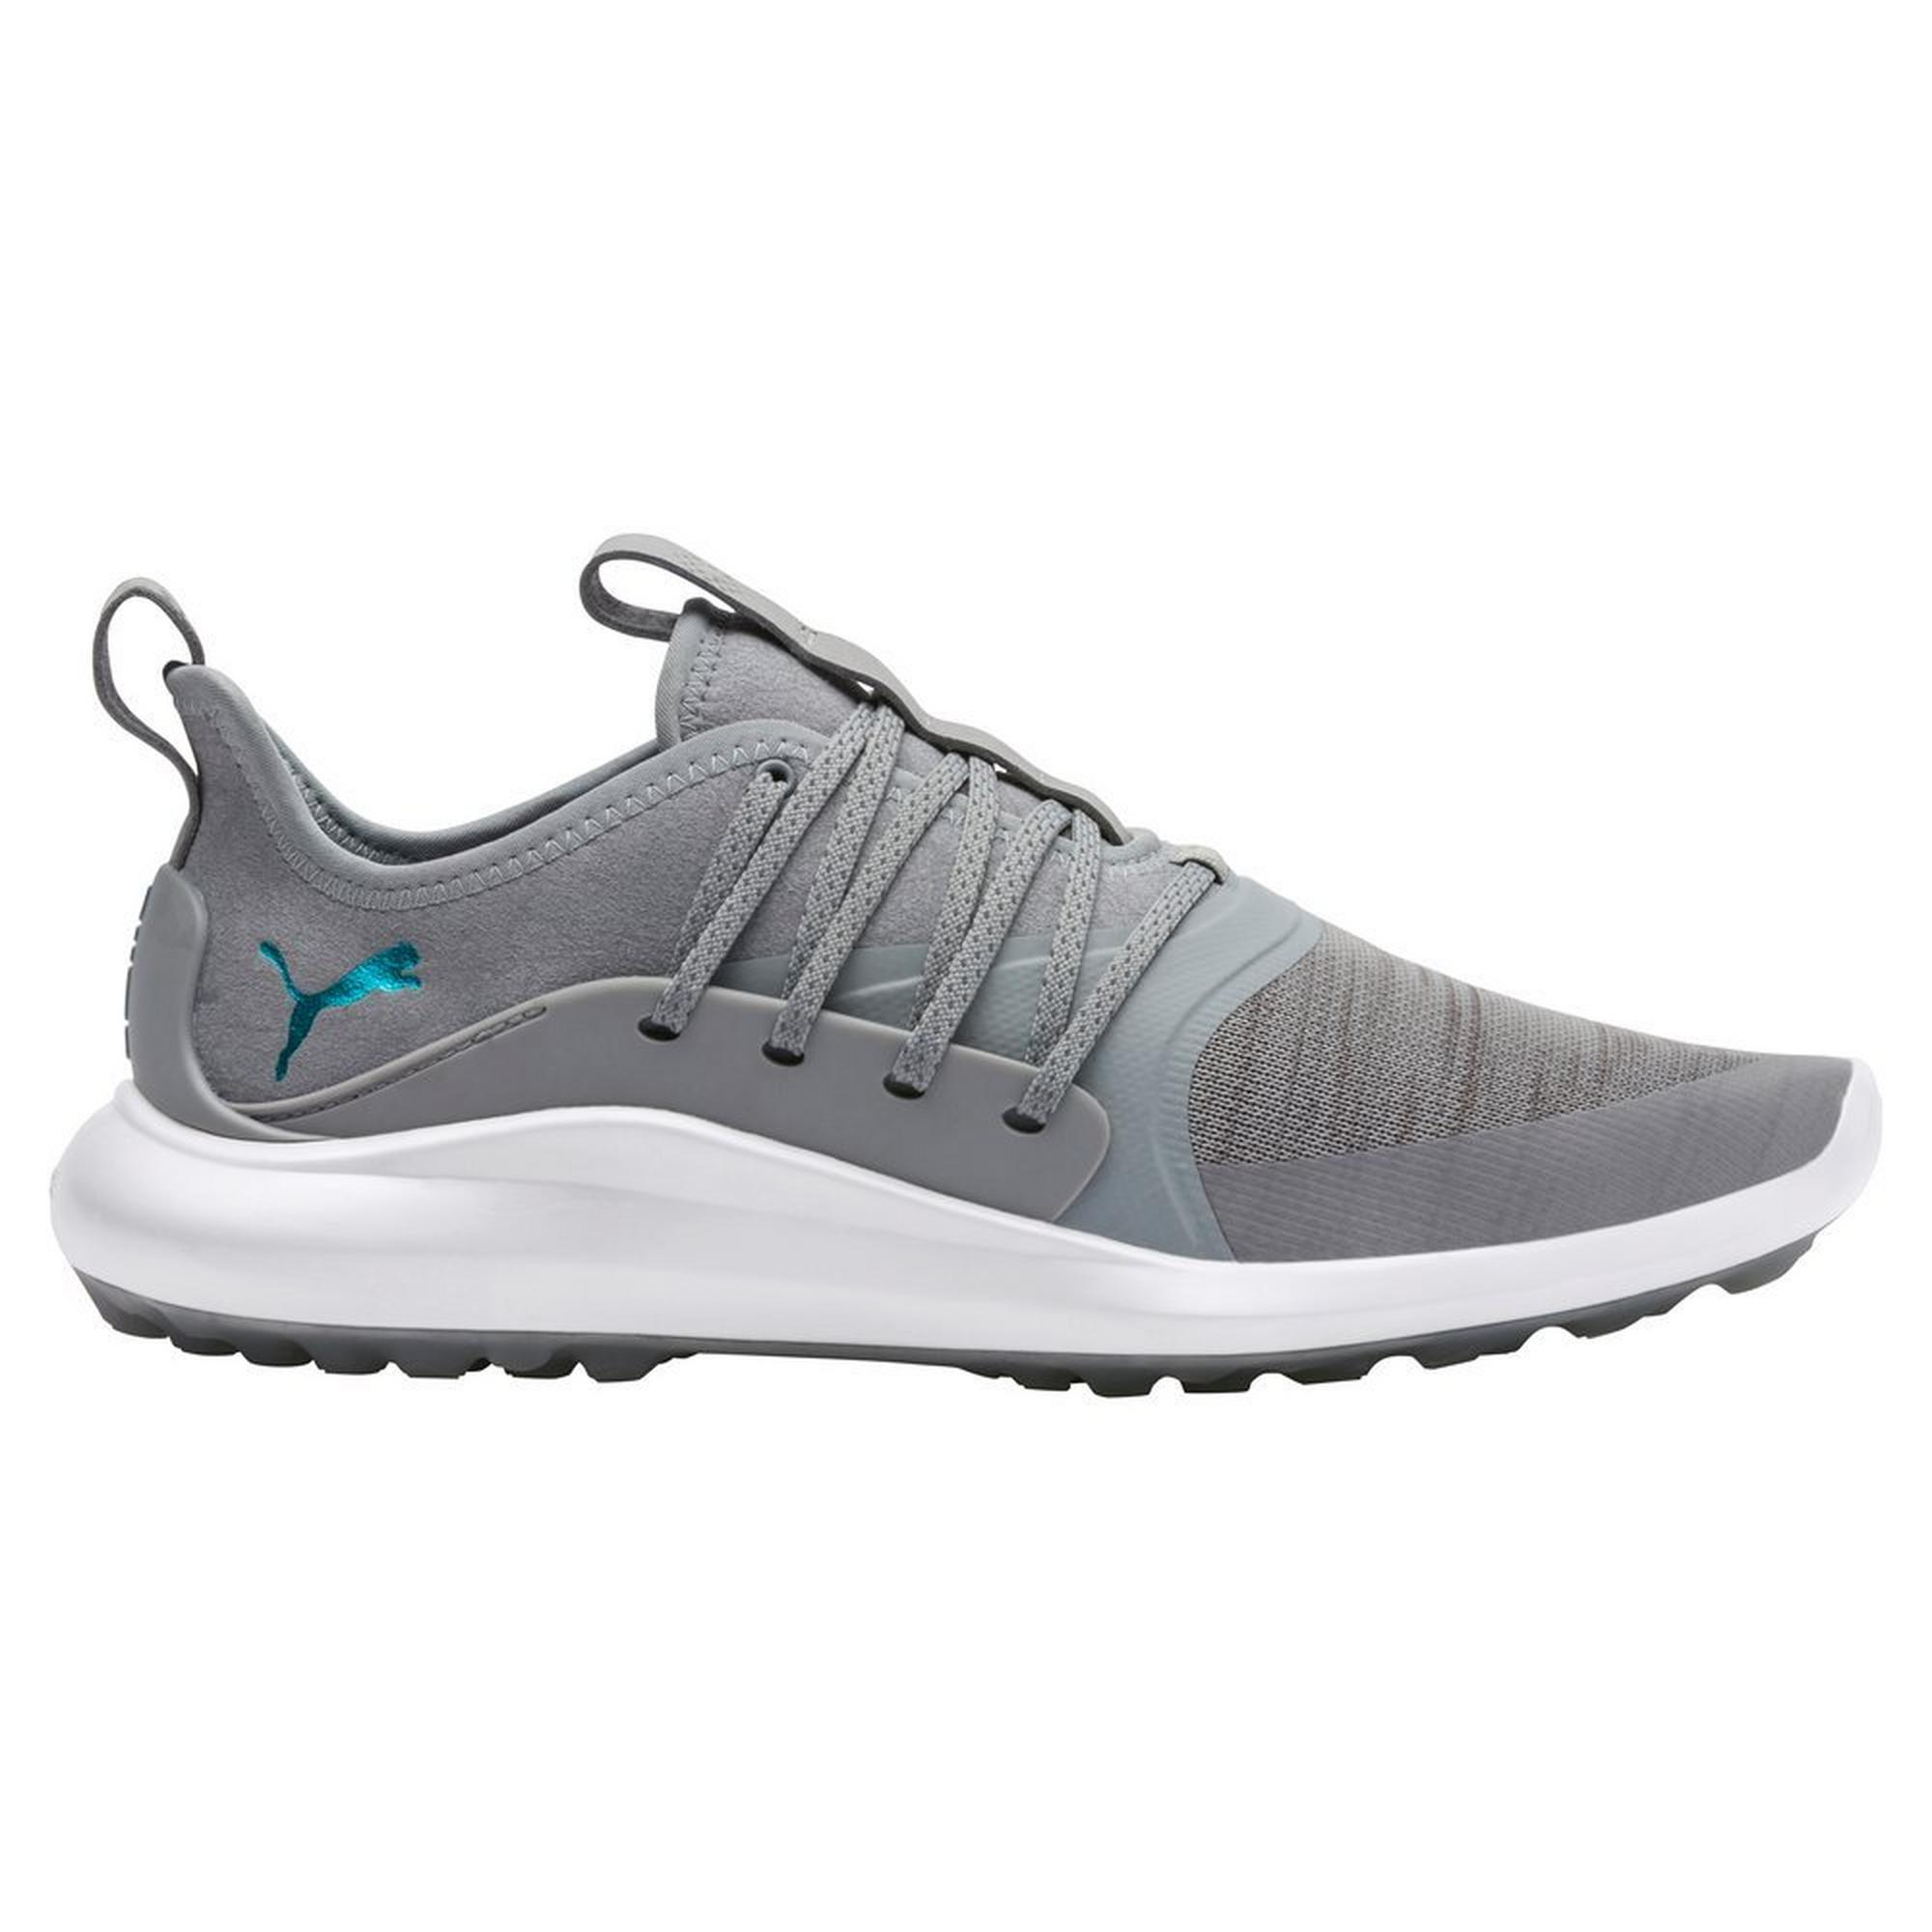 Women's Ignite NXT Solelace Spikeless Golf Shoe - Light Grey